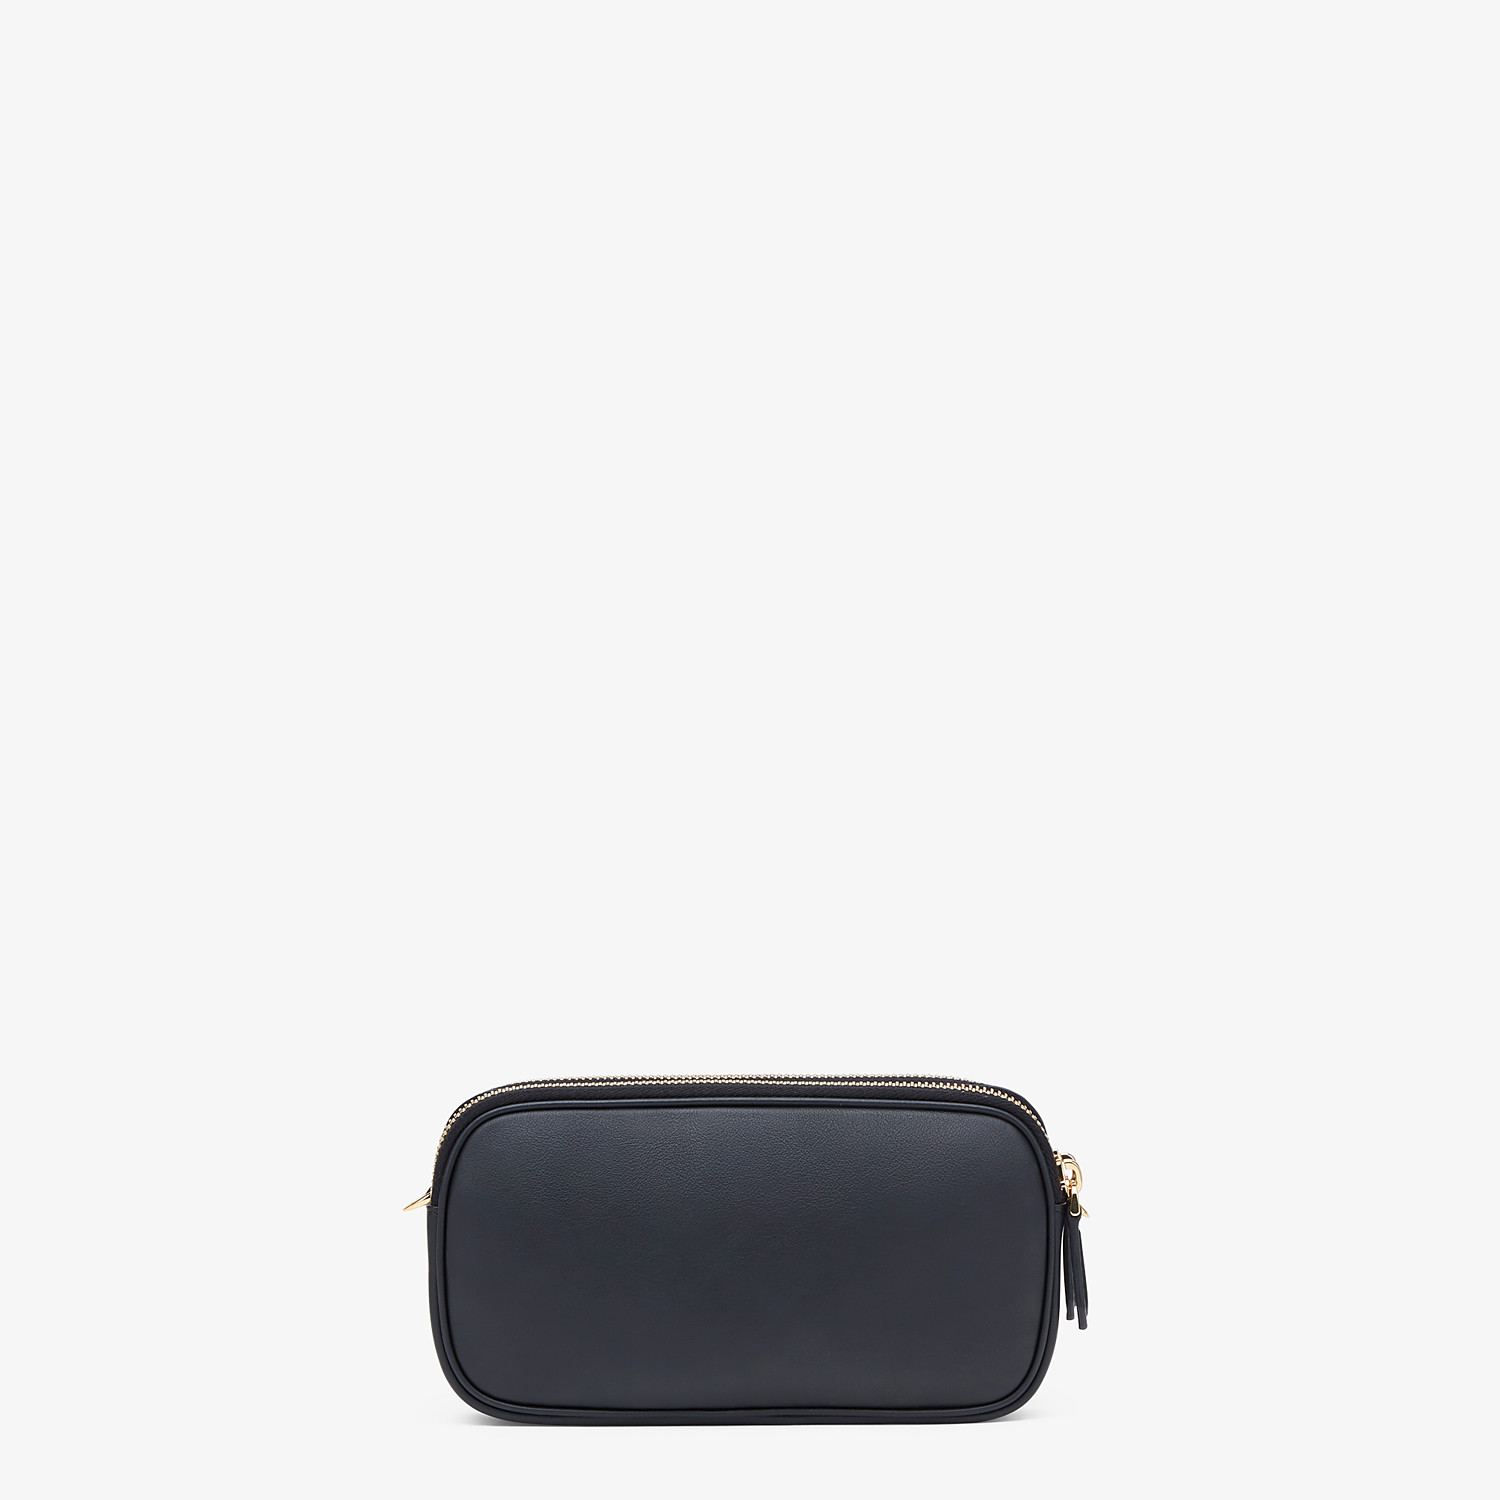 FENDI EASY 2 BAGUETTE - Black leather mini-bag - view 4 detail